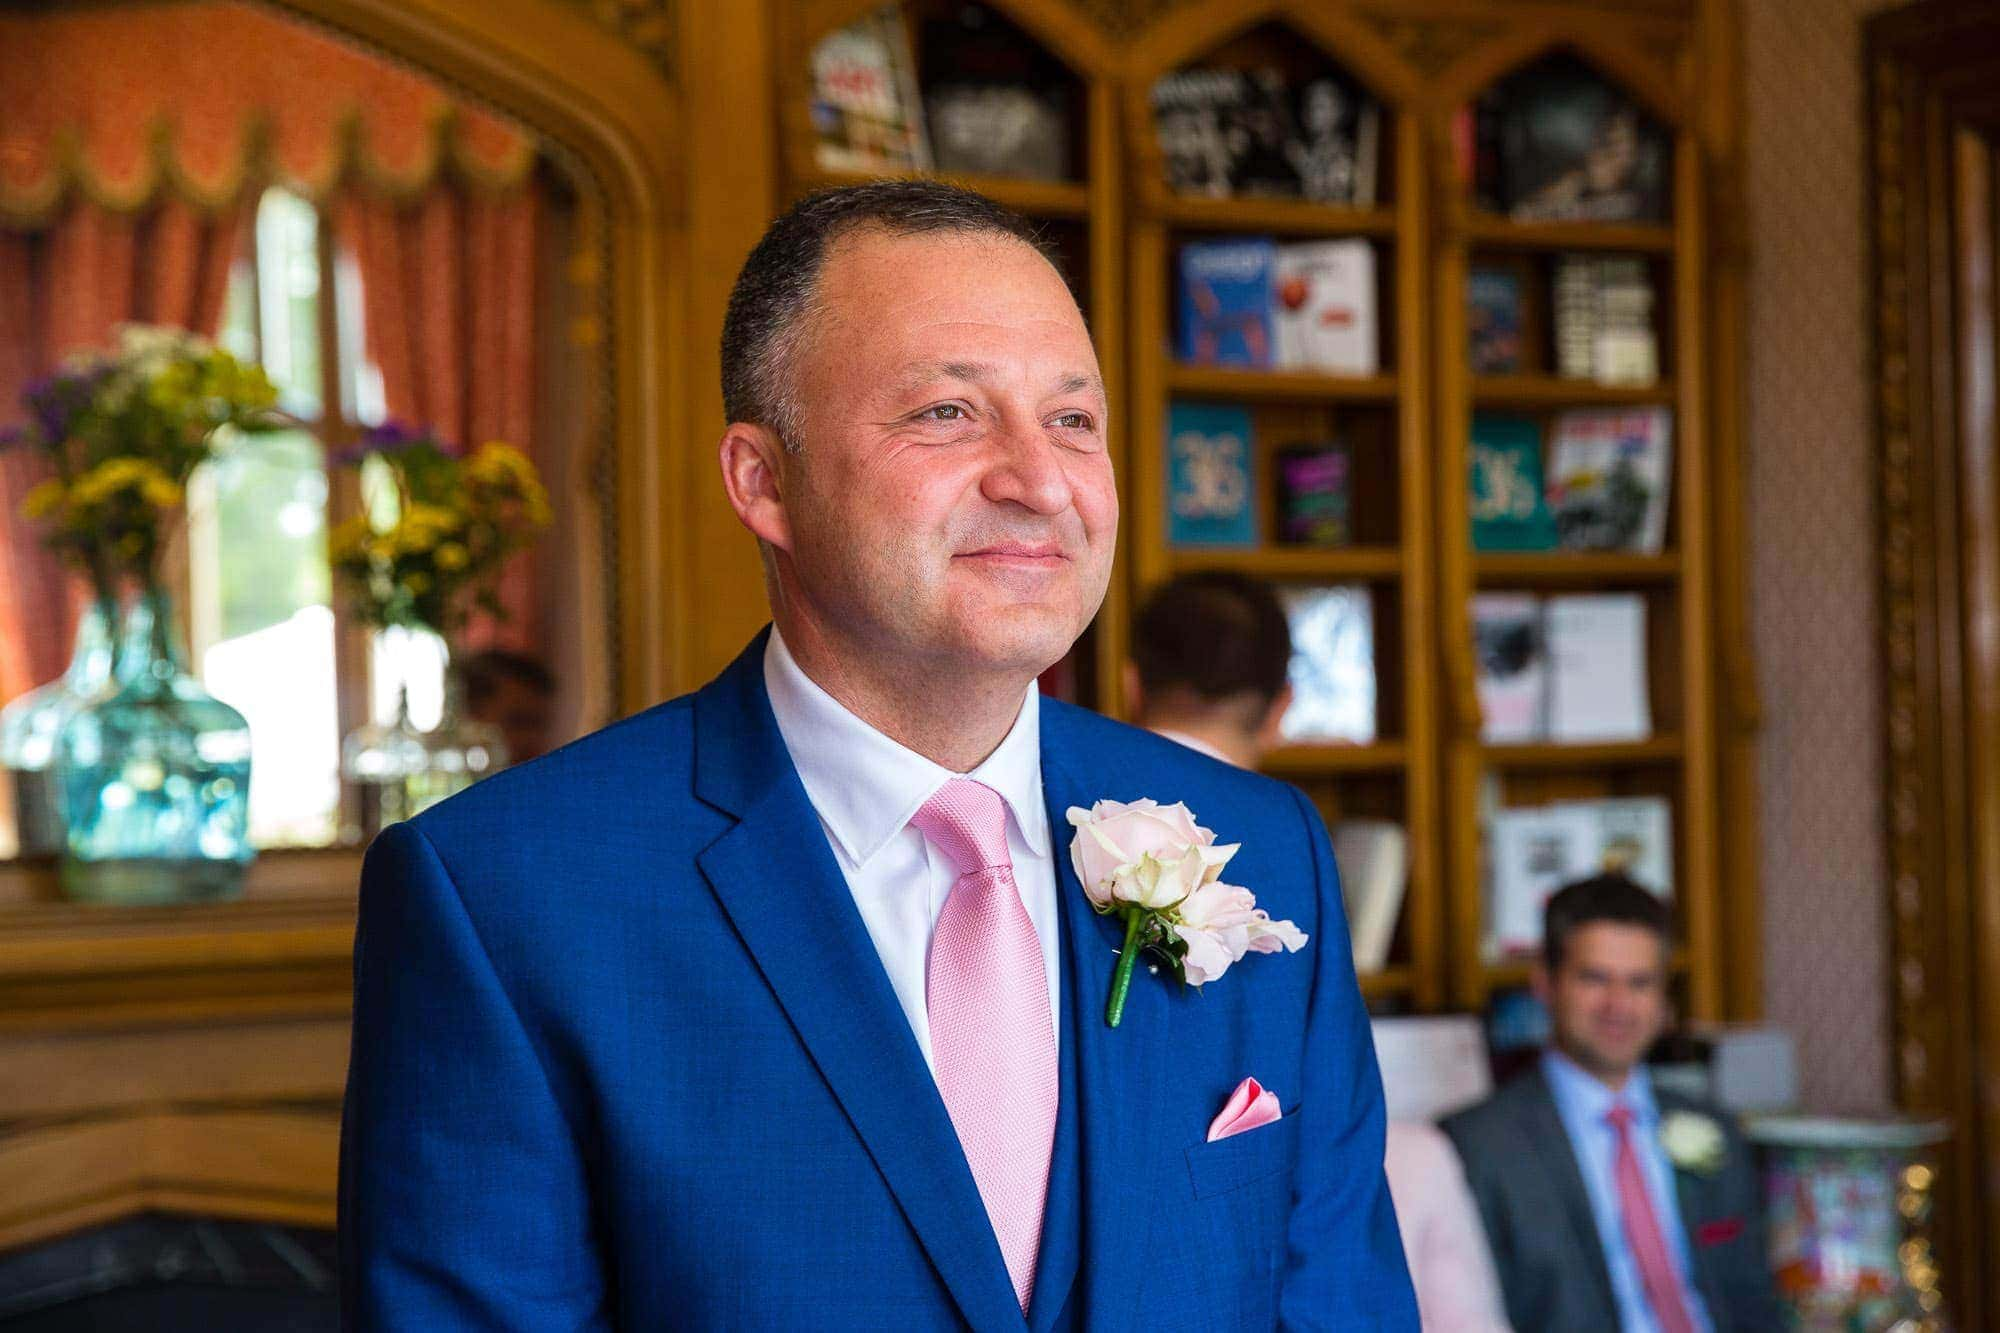 Groom in light blue suit, pink tie, pink buttonhole